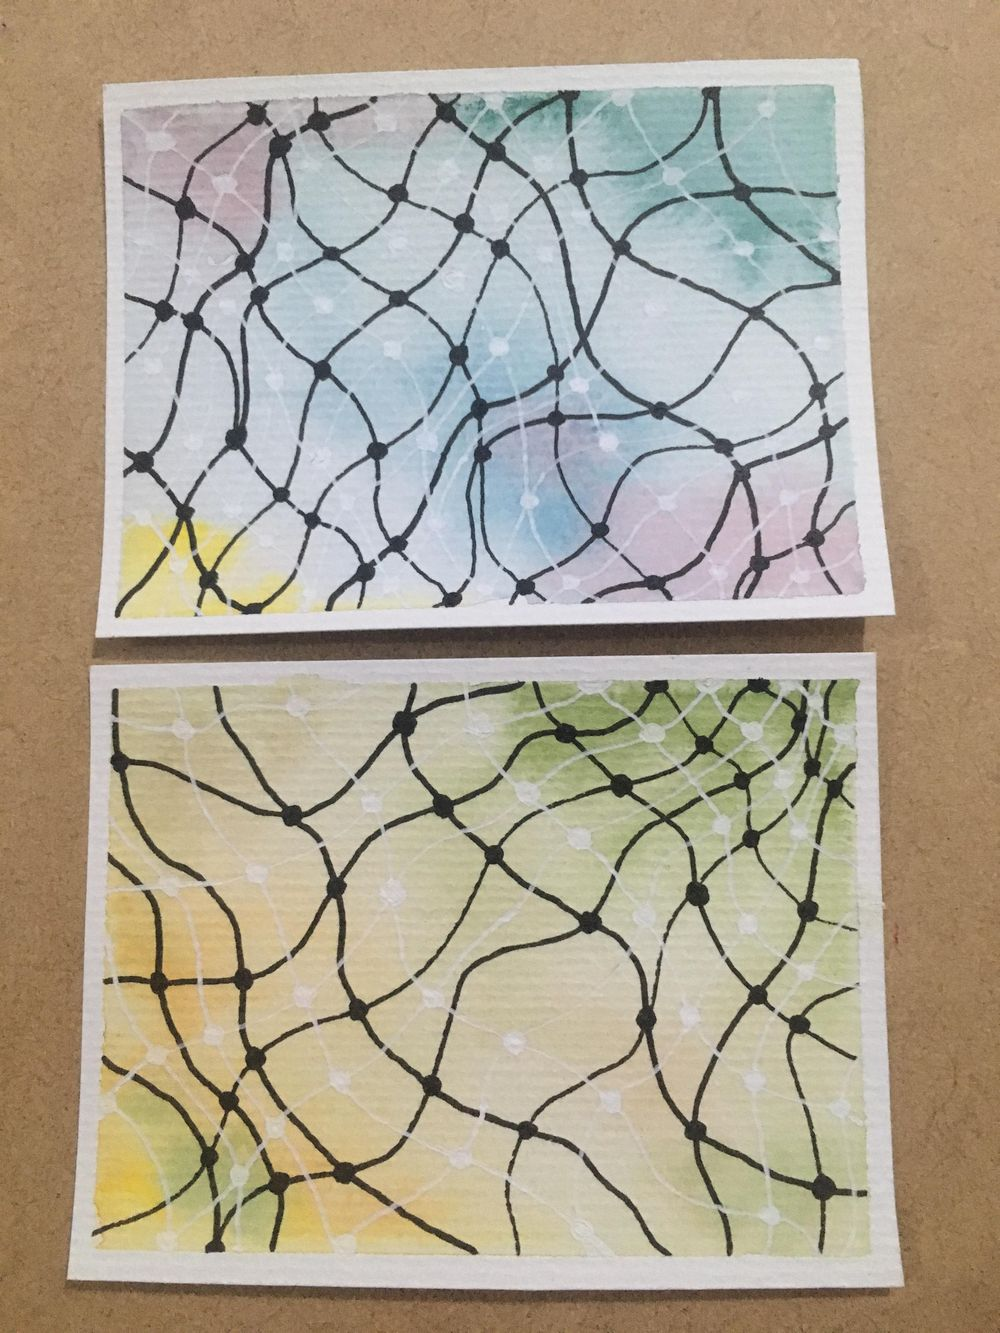 Watercolor Background - Exercise - image 4 - student project